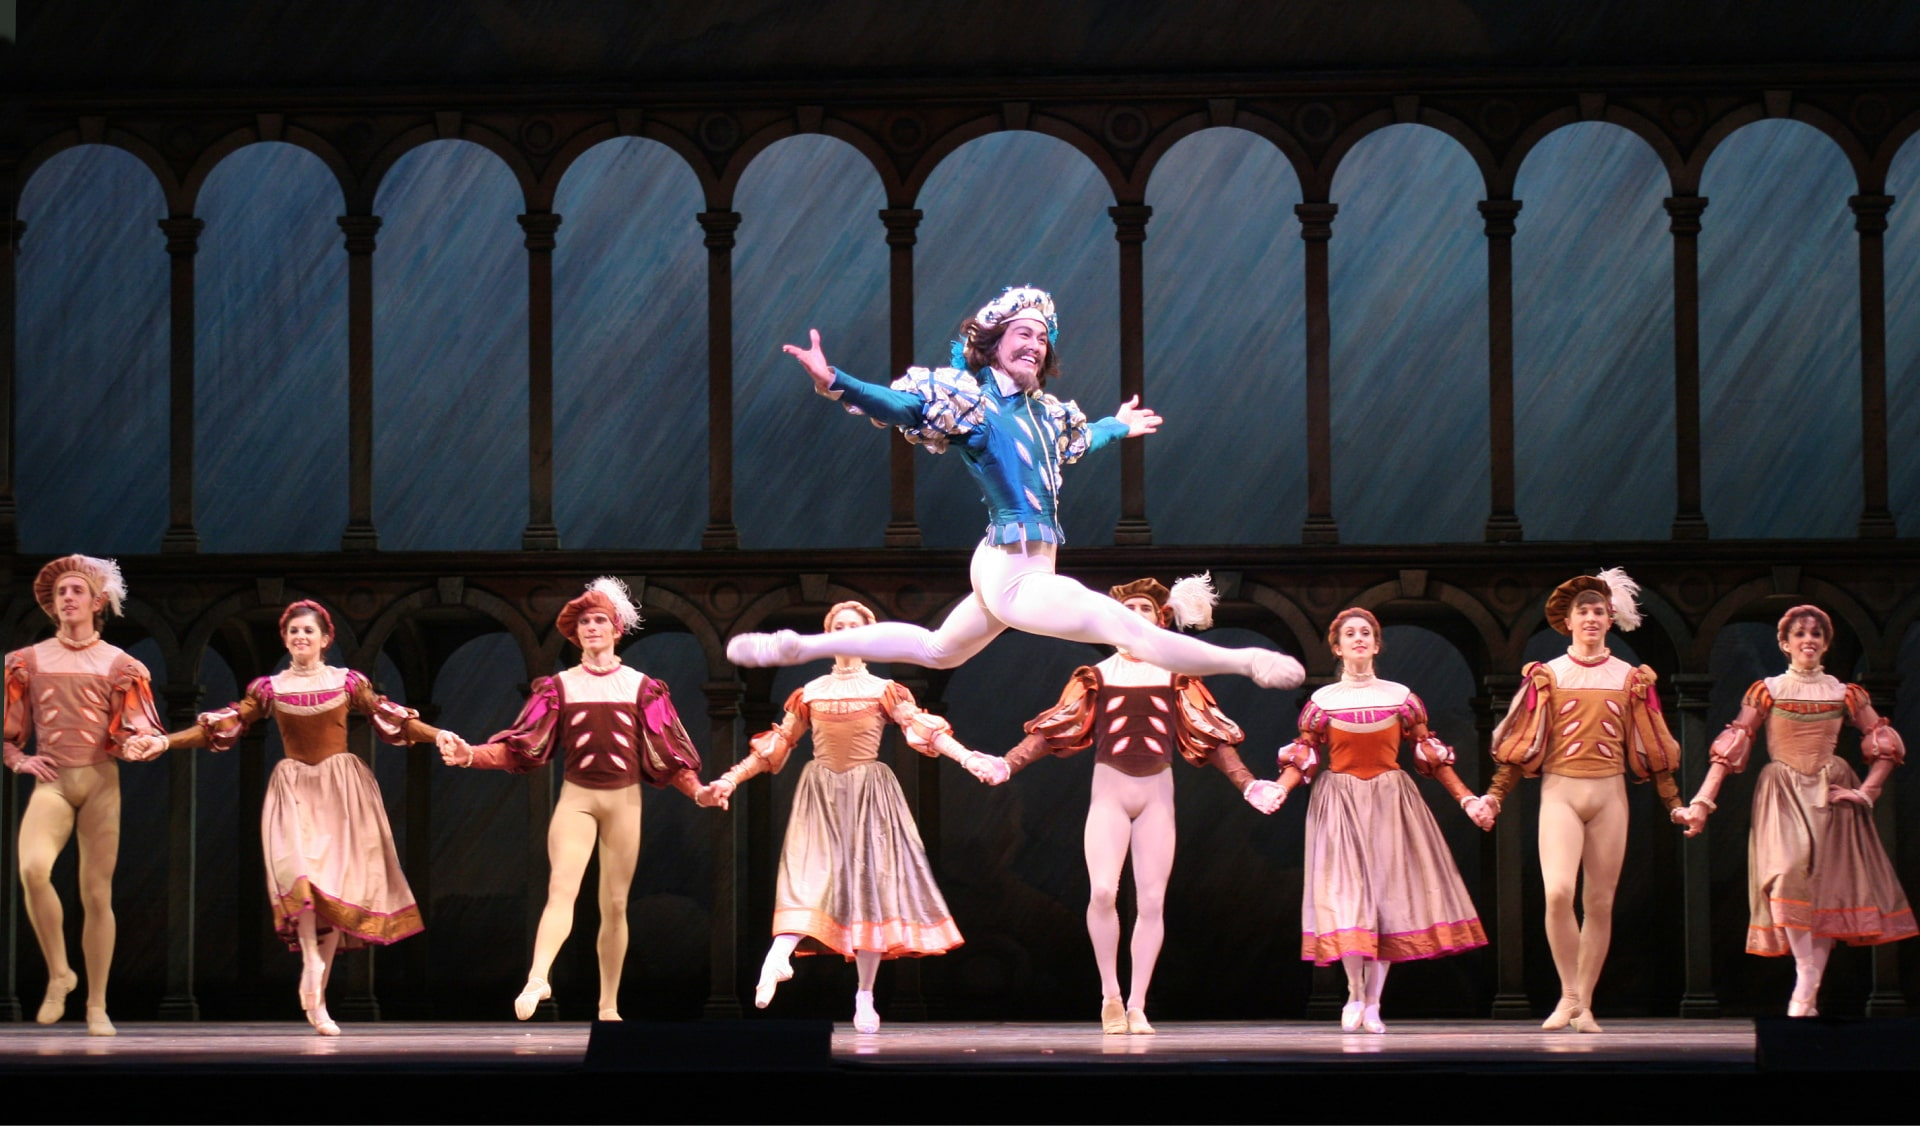 Bearded dancer in puffy blue jacket and hat leaps, watched by village dancers in front of levels with arches against painted blue sky.